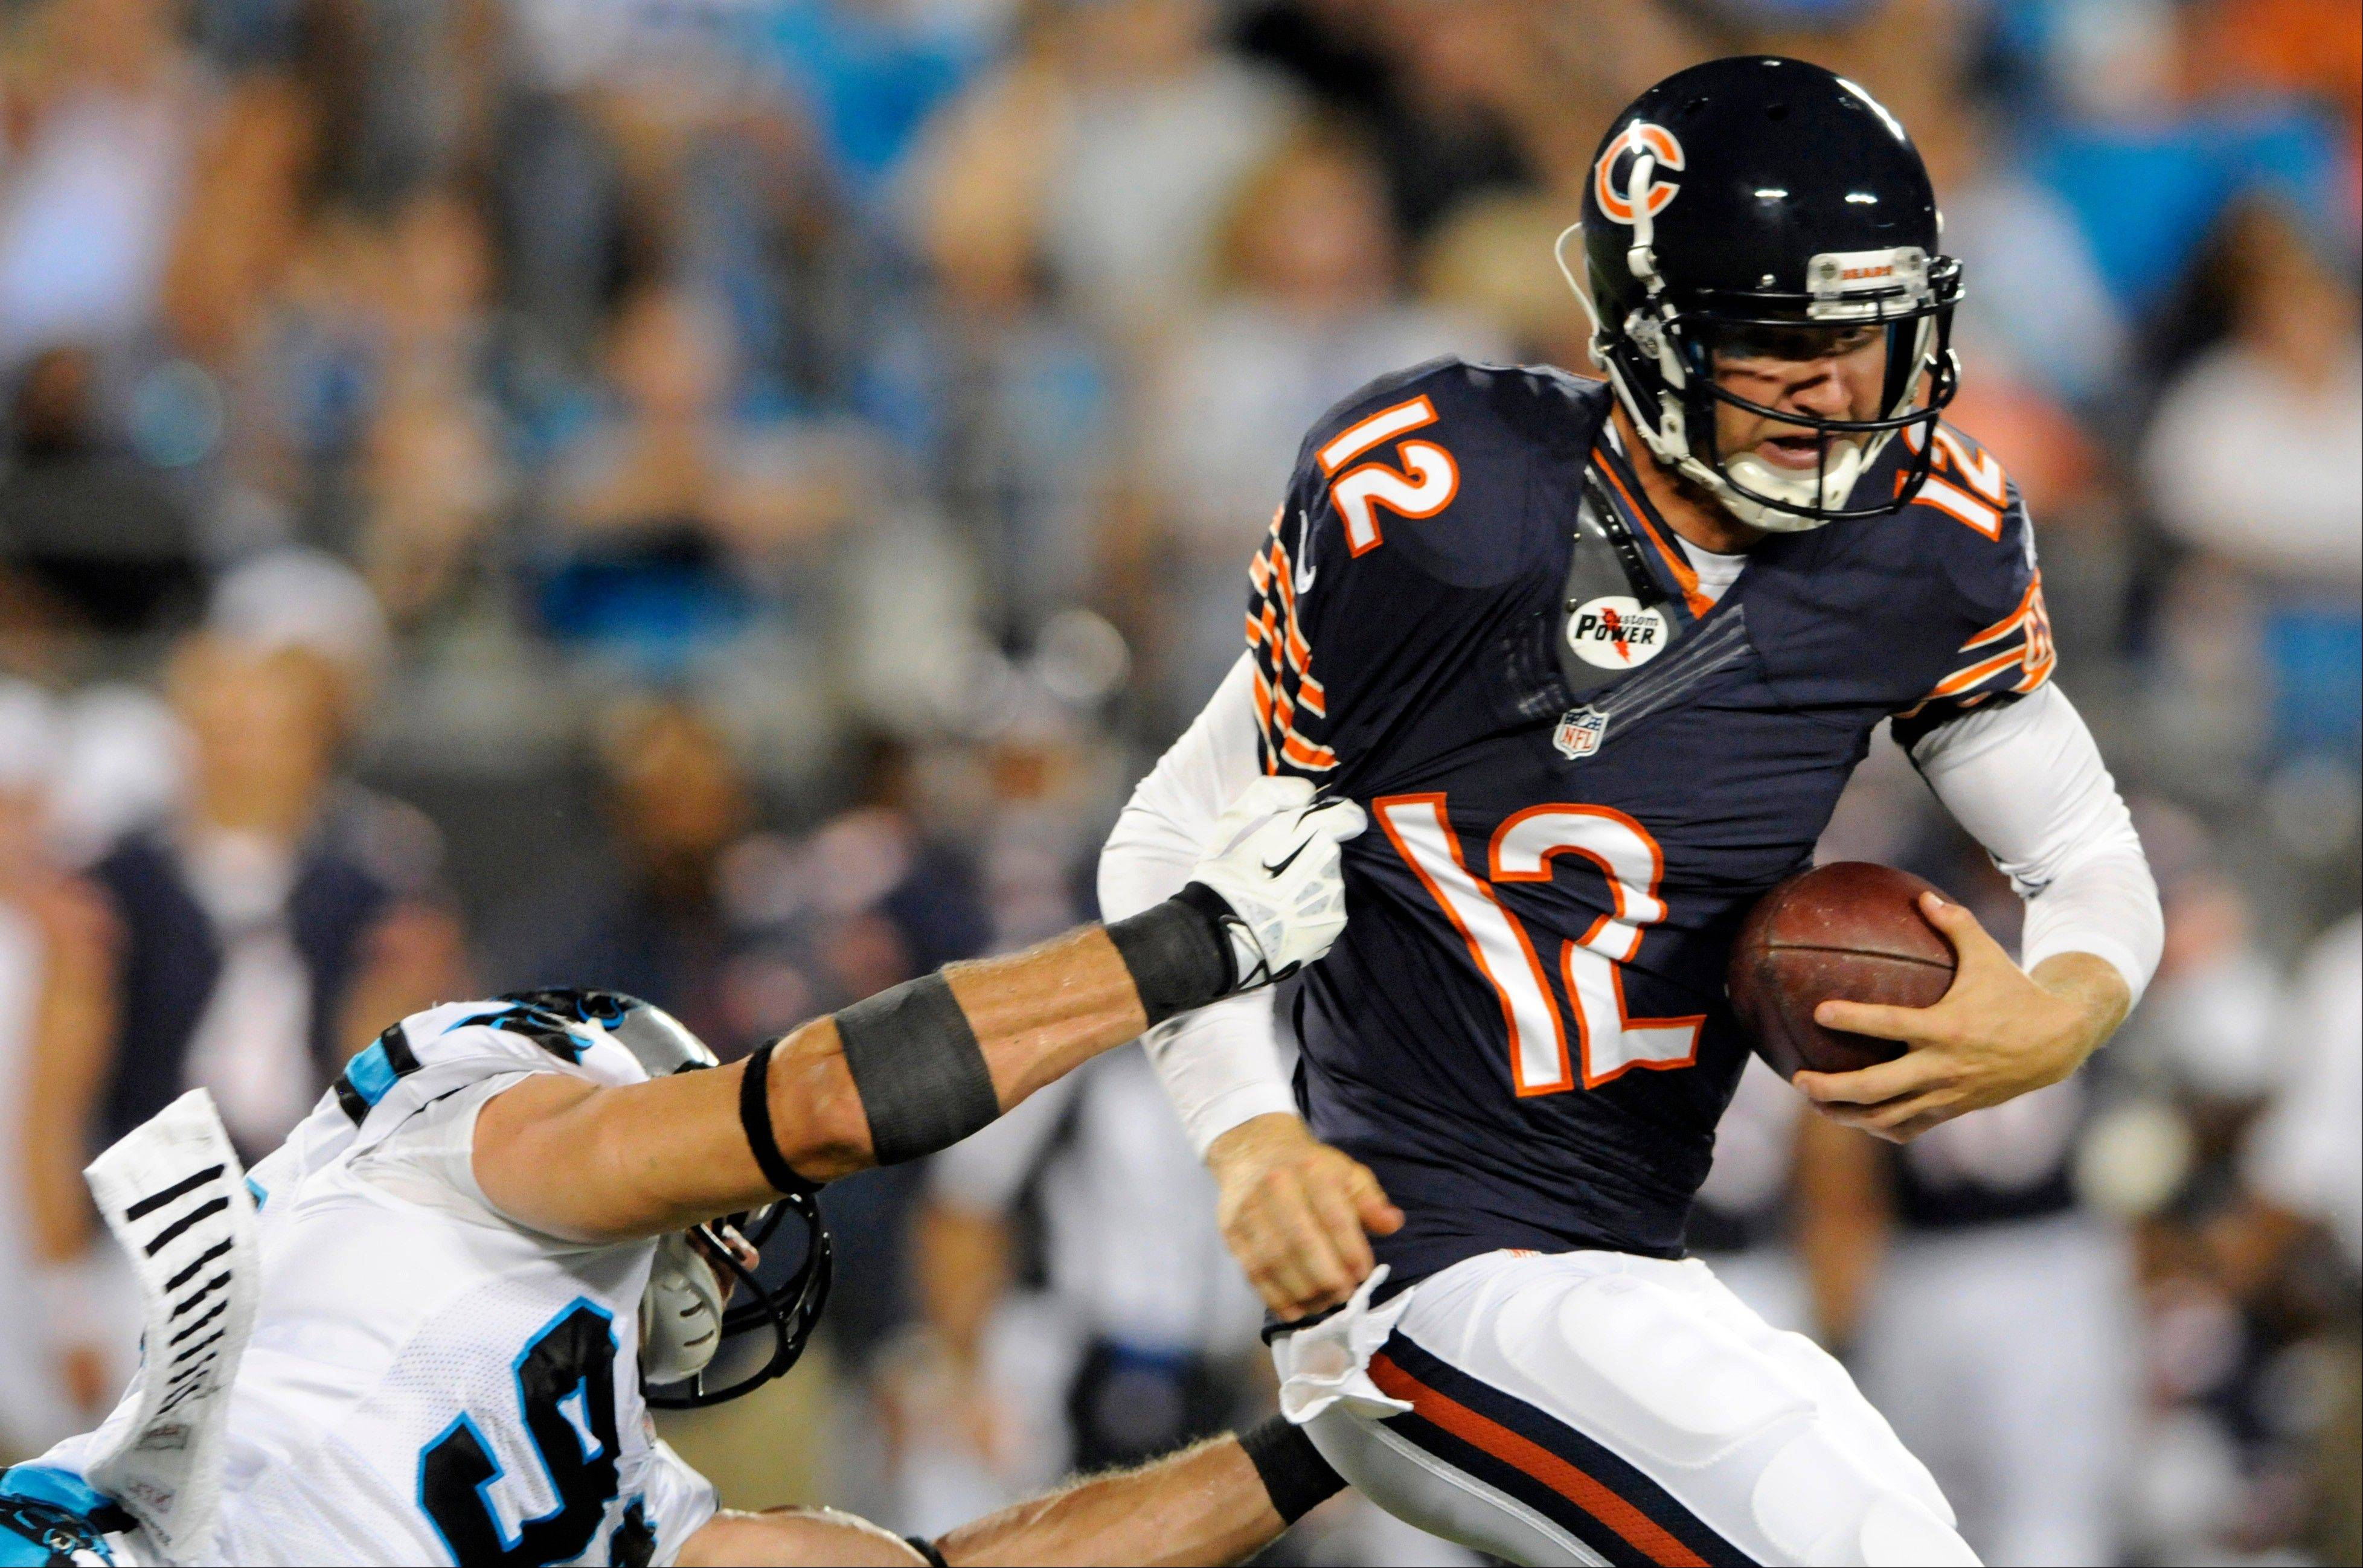 Chicago Bears quarterback Josh McCown (12) is sacked by Carolina Panthers' Colin Cole (91) during the first half of a preseason NFL football game in Charlotte, N.C., Friday, Aug. 9, 2013.